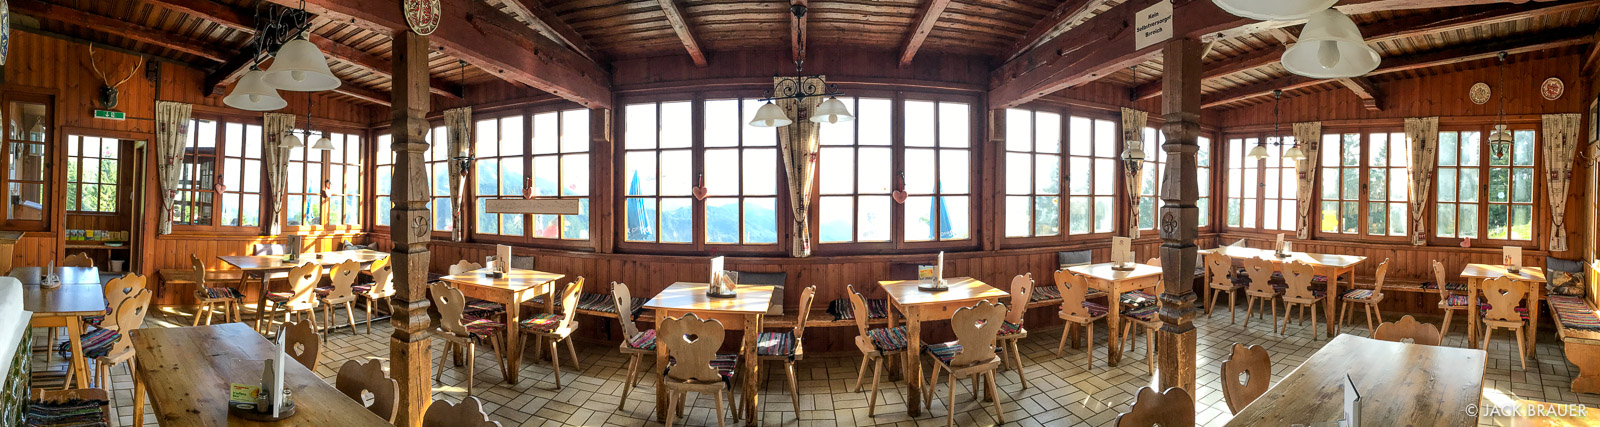 The gorgeous dining room of the Vorderkaiserfeldenhütte, surrounded by windows with amazing views of the valley and mountains...